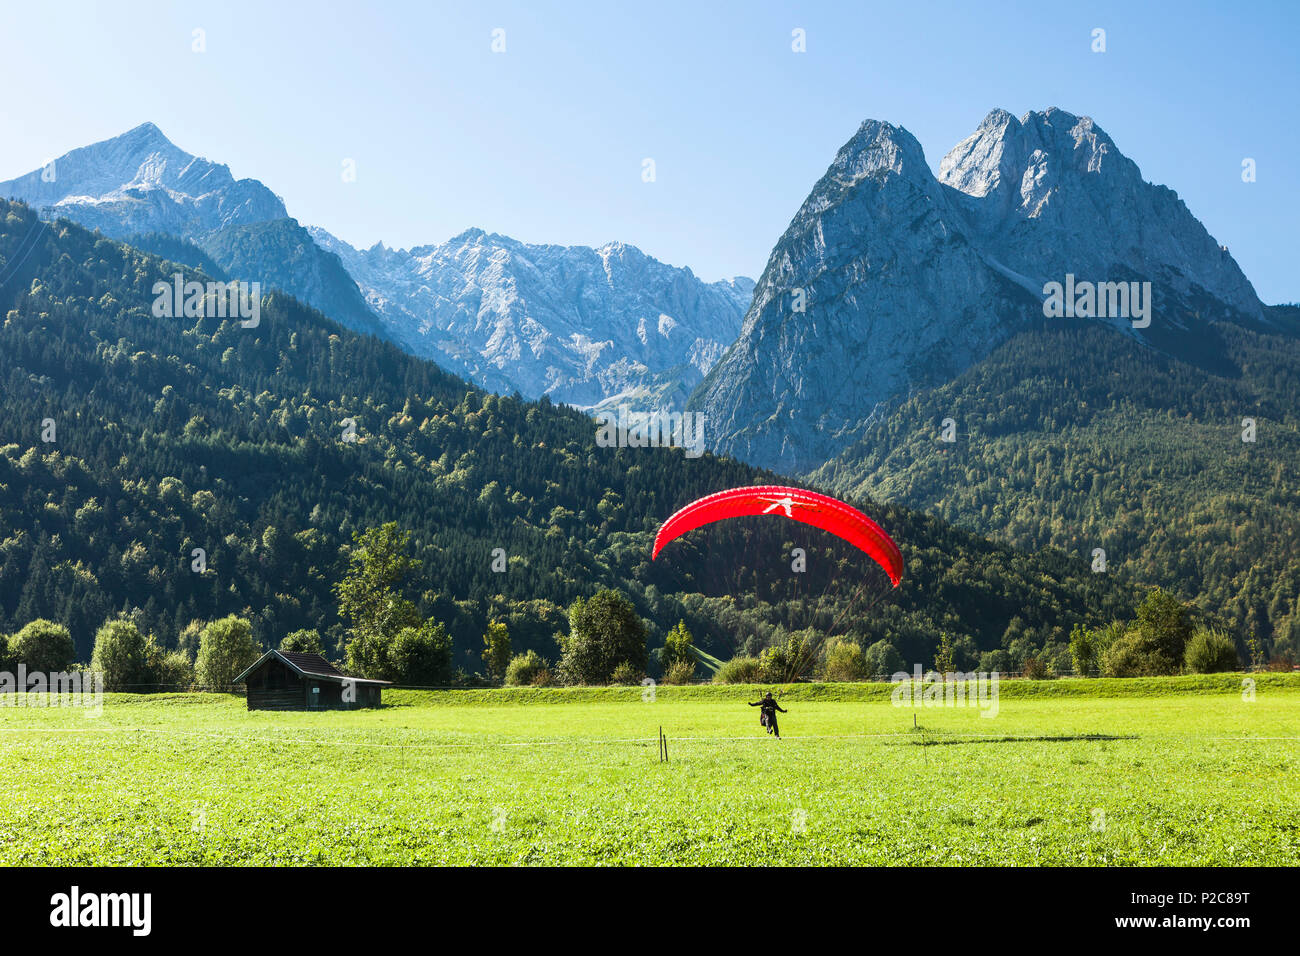 Paraglider landing on meadow overlooking Alpspitz, Jubilaeums Ridge and Waxenstein, Garmisch-Partenkirchen, Bavaria, Germany Stock Photo